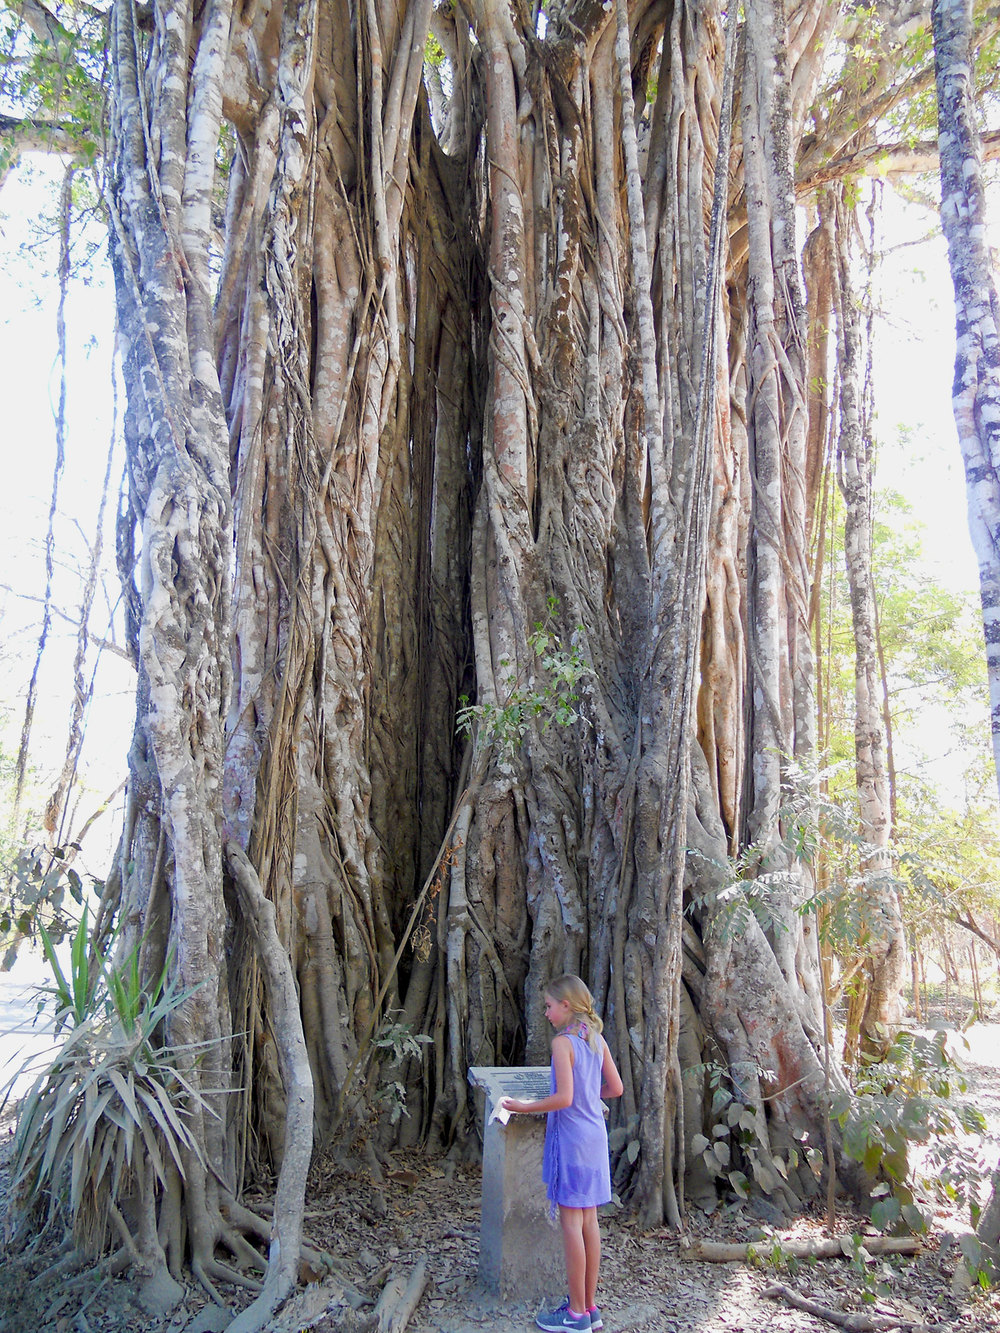 A massive Ficus, appears like a giant next to a little girl.